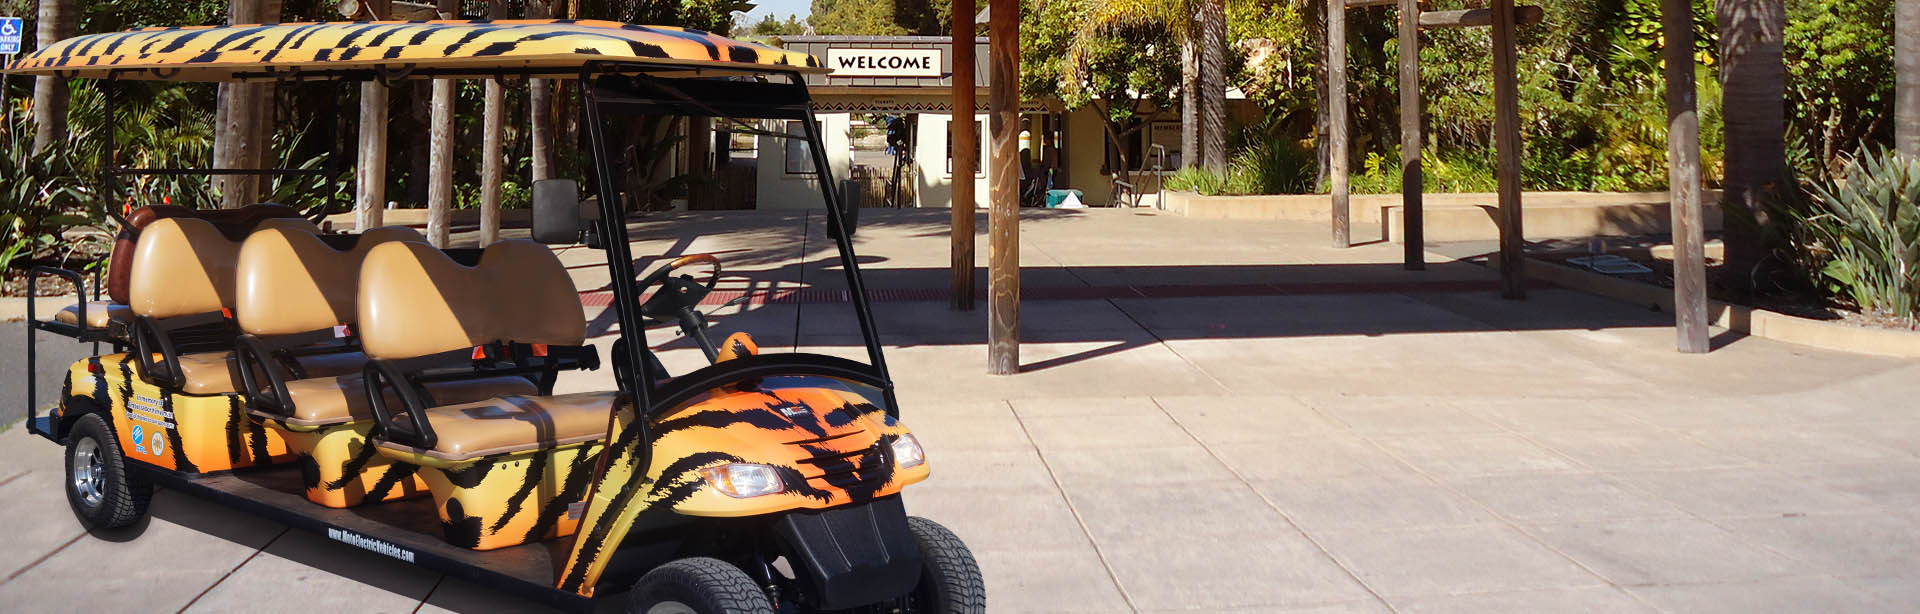 Zoo Golf Carts